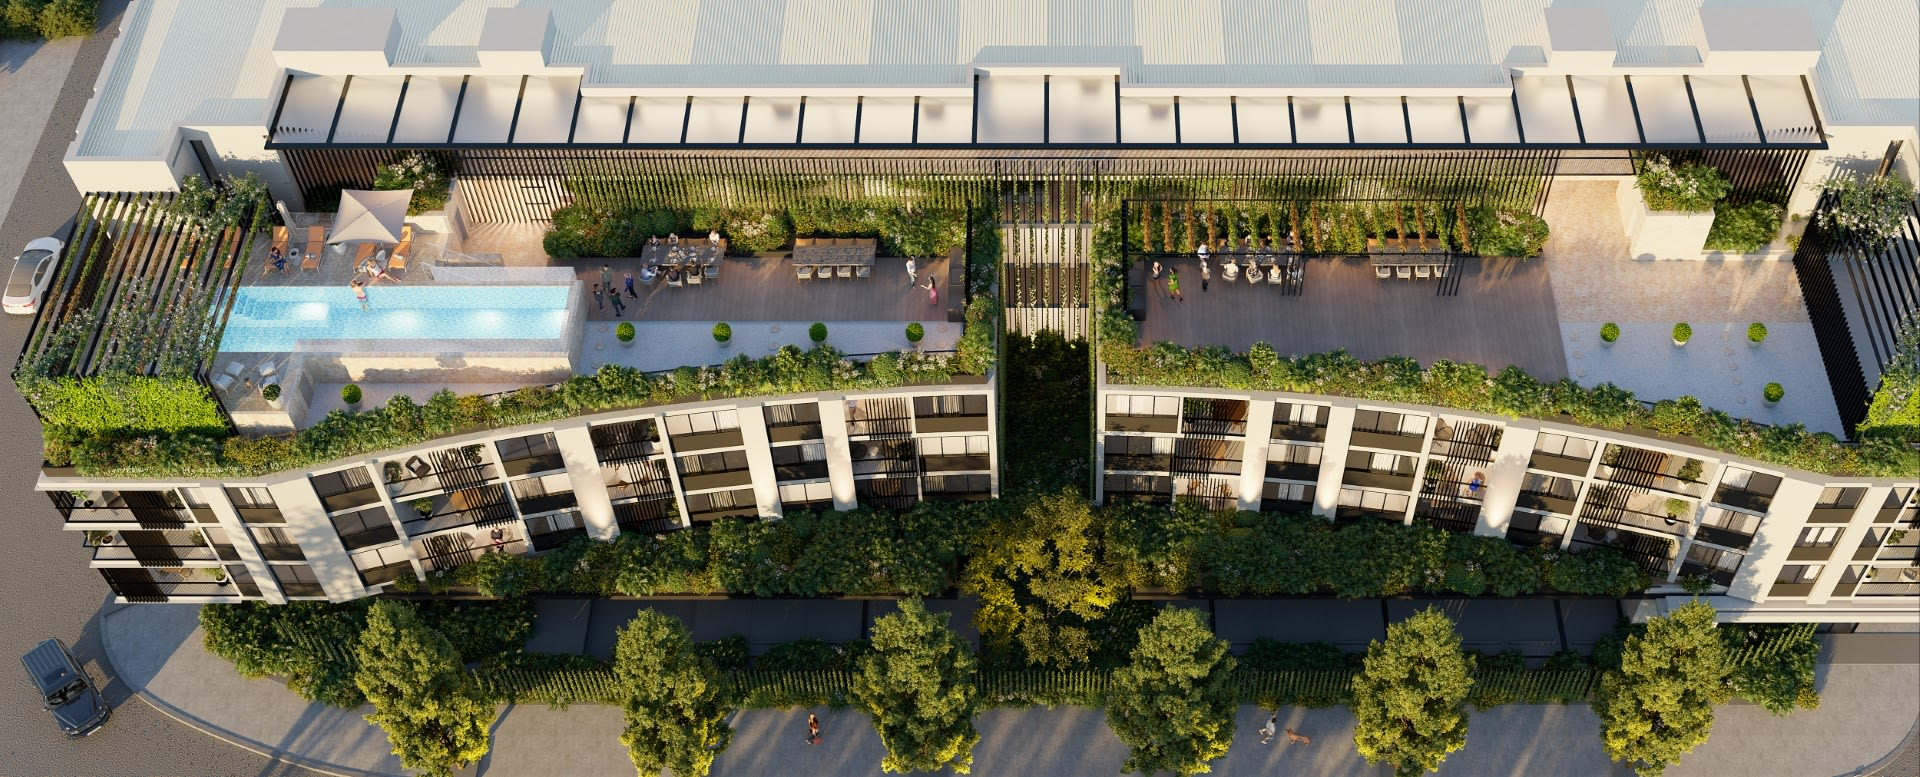 Locals snap up apartments in The Fernery, but Brisbane needs investors to grow: Five minutes with Colliers director Andrew Scriven